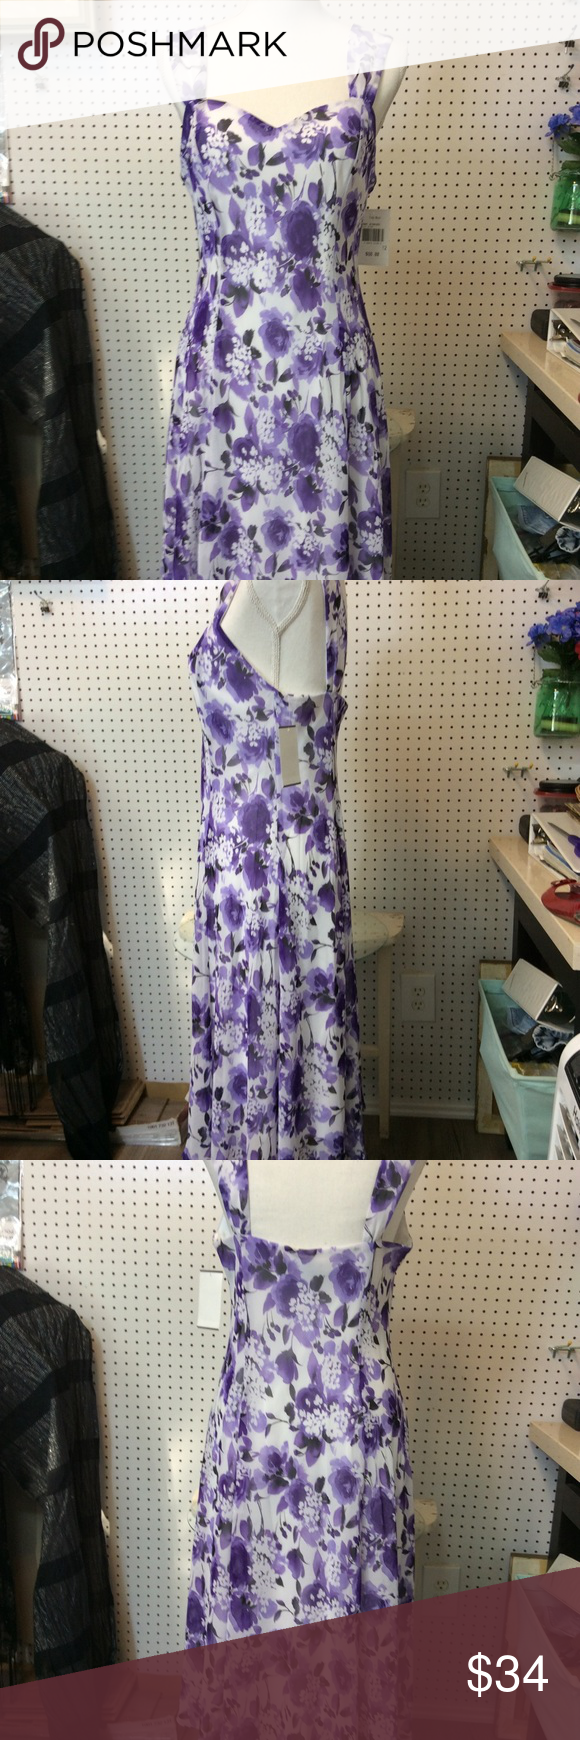 Connected Apparel by Fred Meyer SZ 12 Sundress NWT I